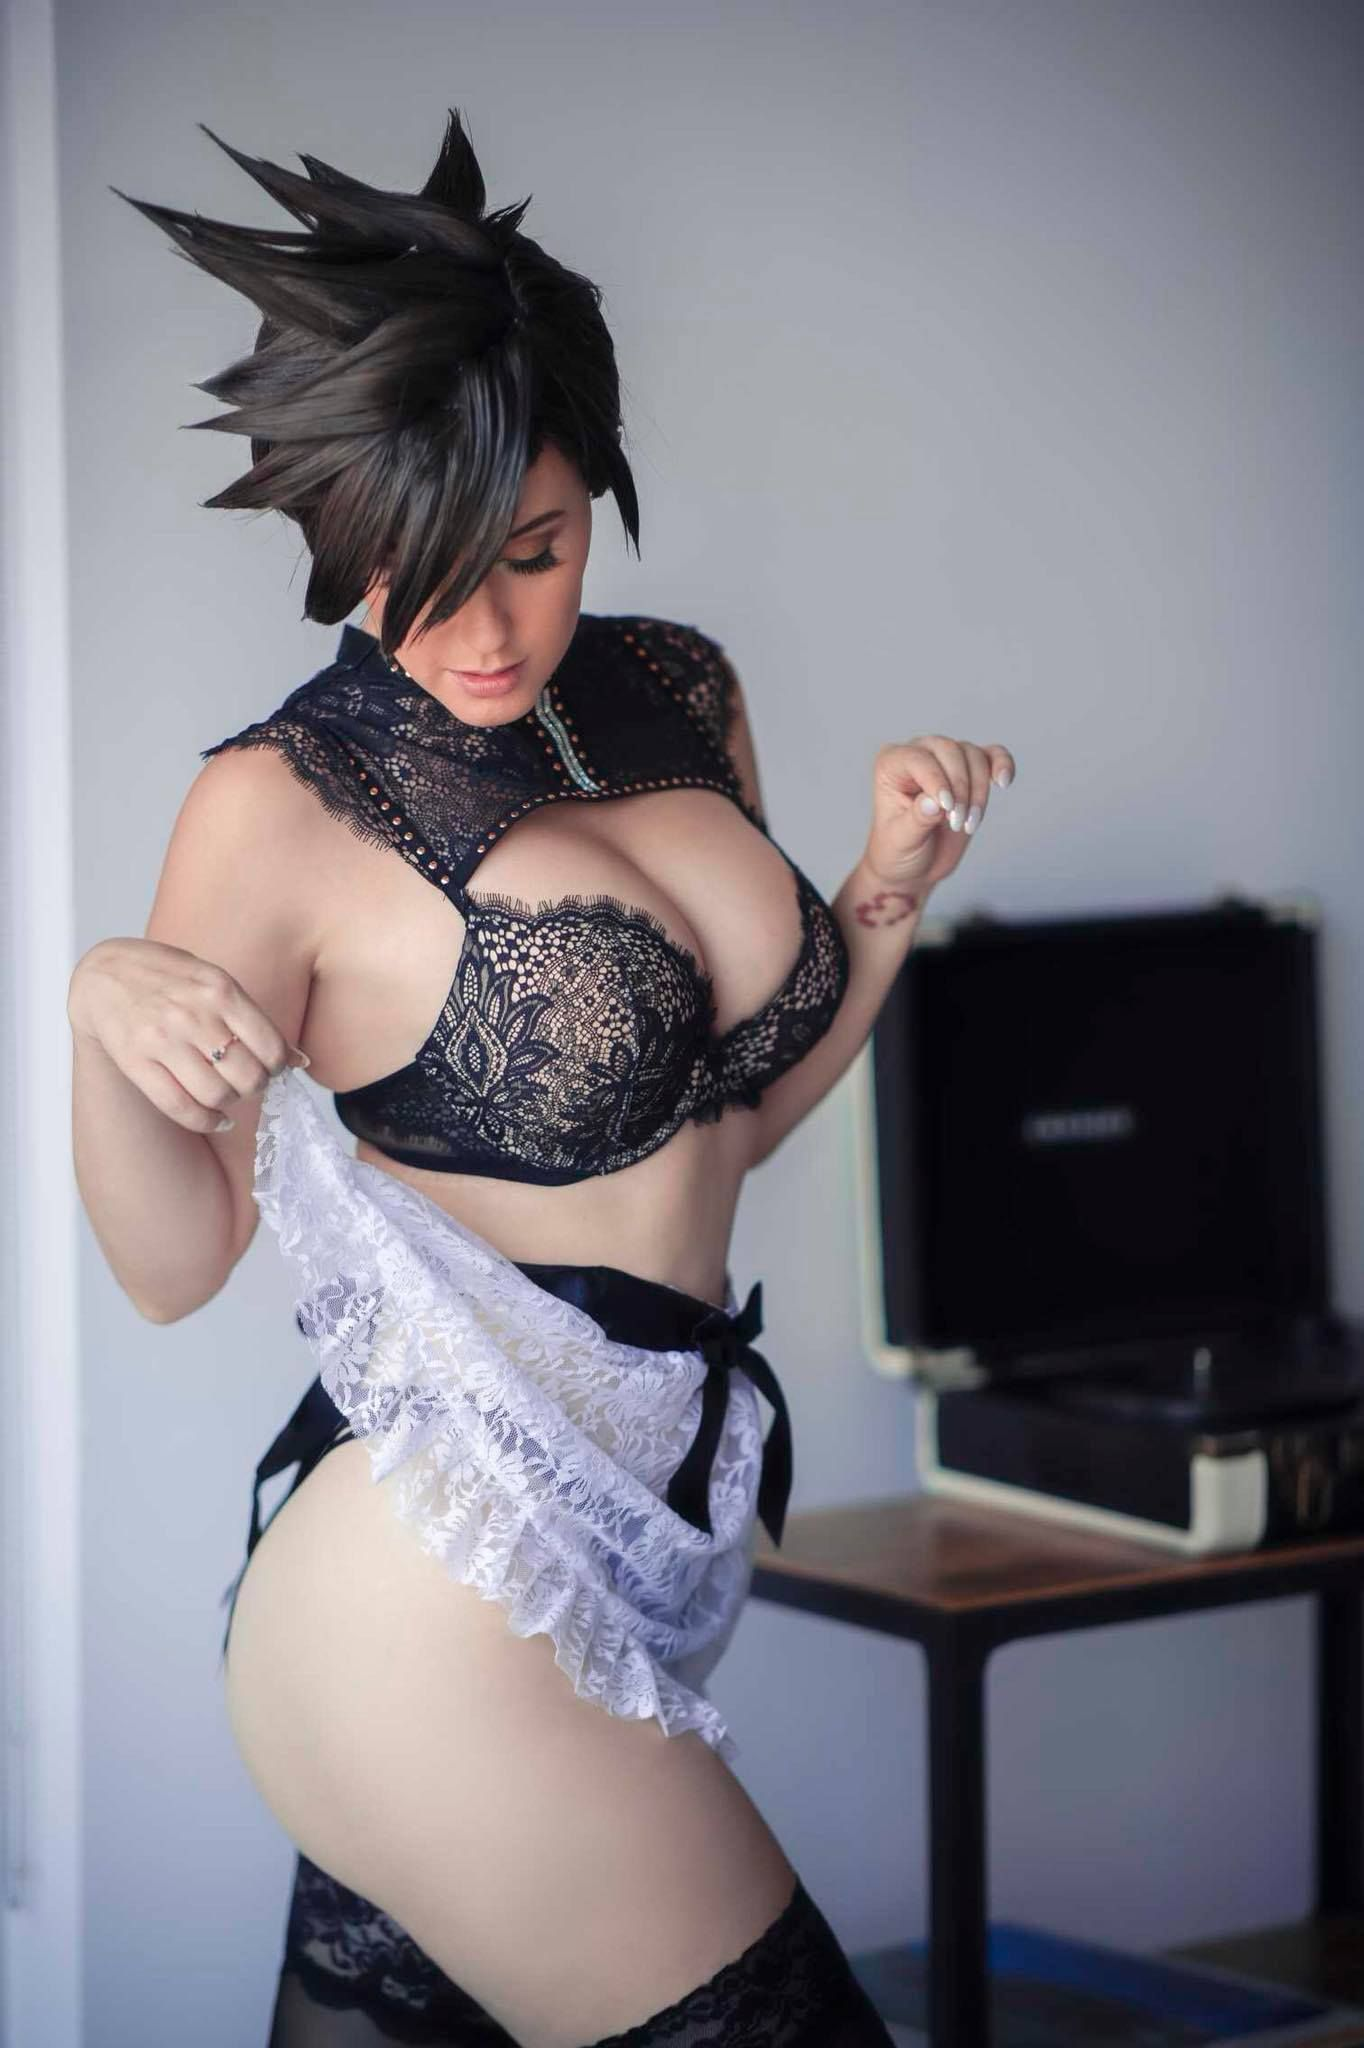 All Overwatch Girls Naked tracer maidmeg turney | geek girls, girl, cosplay